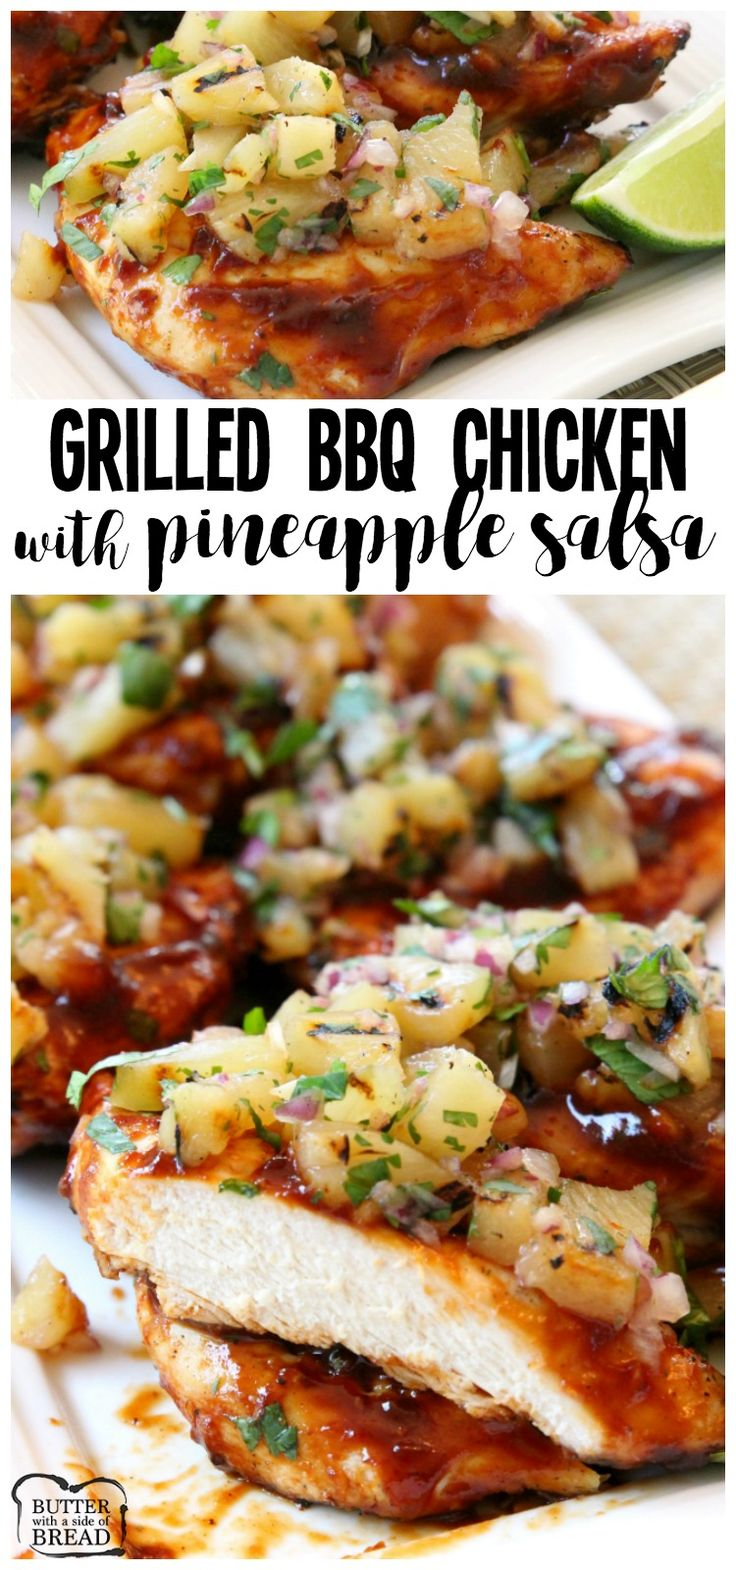 Easy Grilled Chicken smothered with thick & flavorful bbq sauce then topped with a delicious pineapple salsa is what's for dinner! Perfect for weeknights or weekend get-togethers, the pineapple salsa pairs perfectly with the tangy grilled barbecue chicken. Easy chicken recipe from Butter With A Side of Bread via @ButterGirls